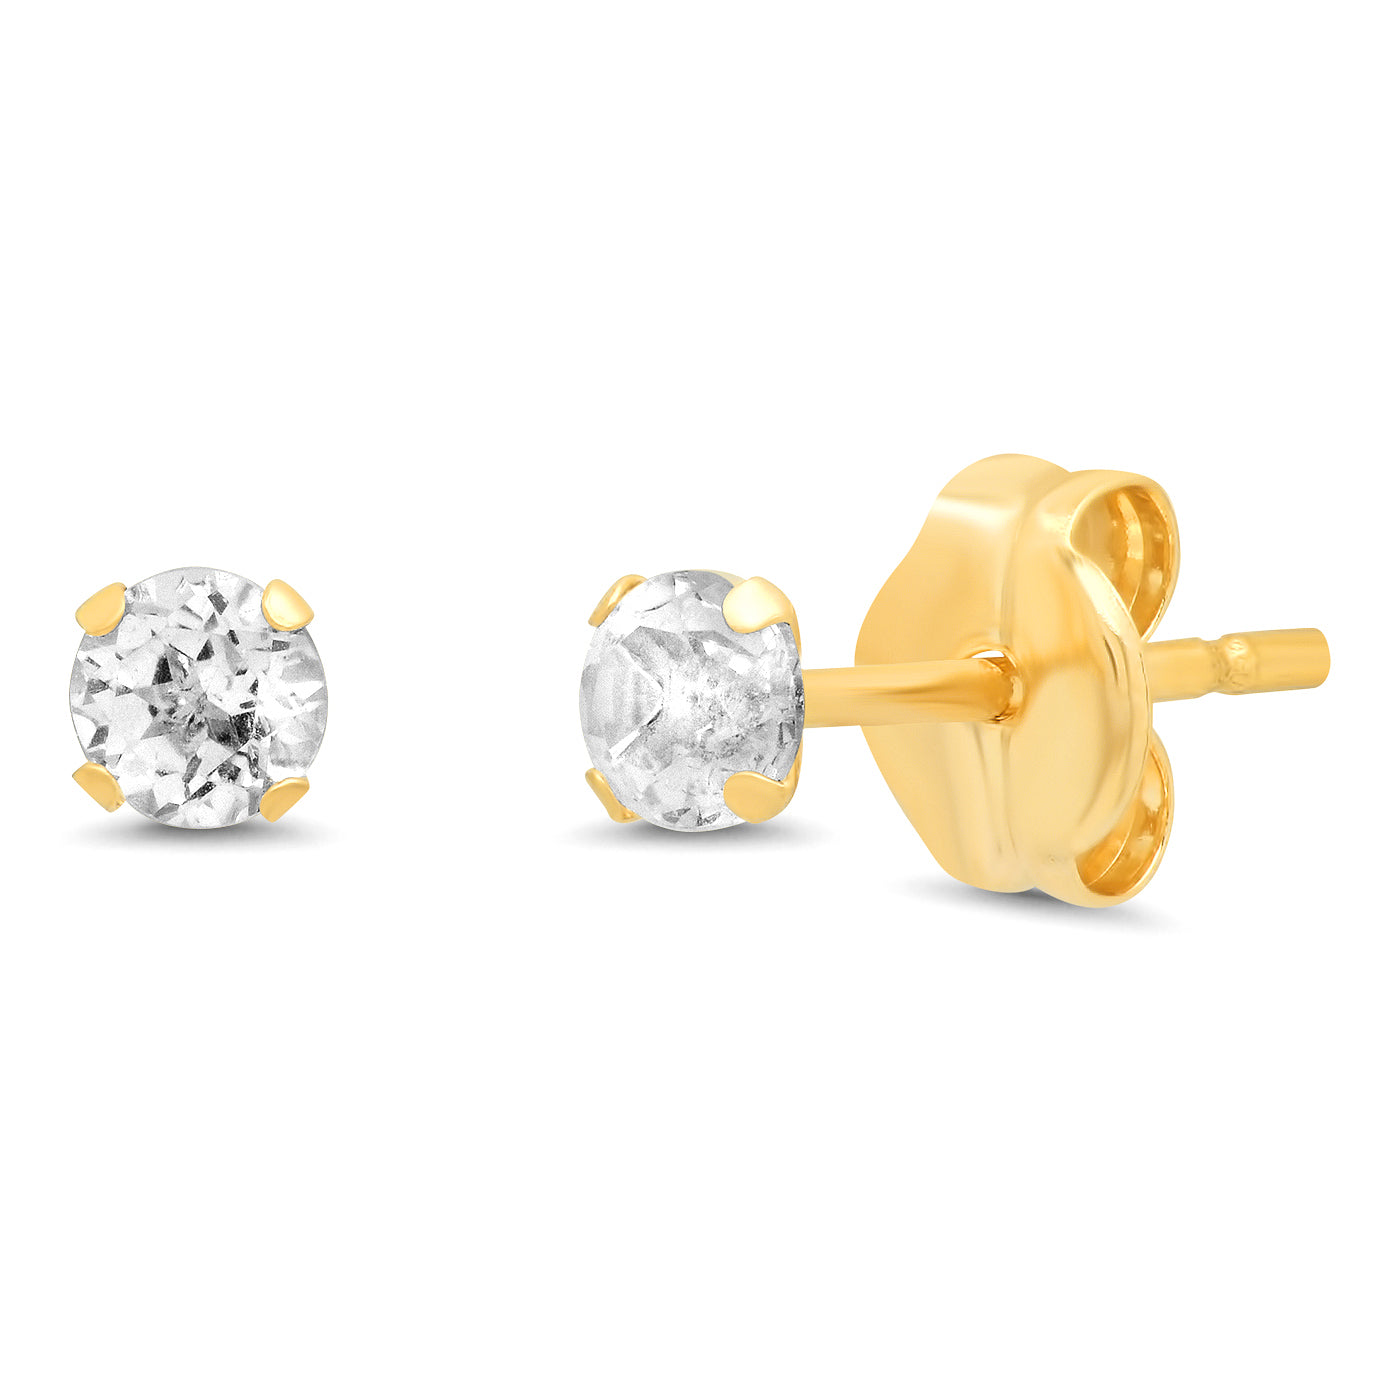 Tai FTE23MM- White Topaz 3mm Stud in 14k Gold by Tai. Wear these studs every day without needing to worry about special care to keep them sparkling. Fine white topaz with solid 14k gold.